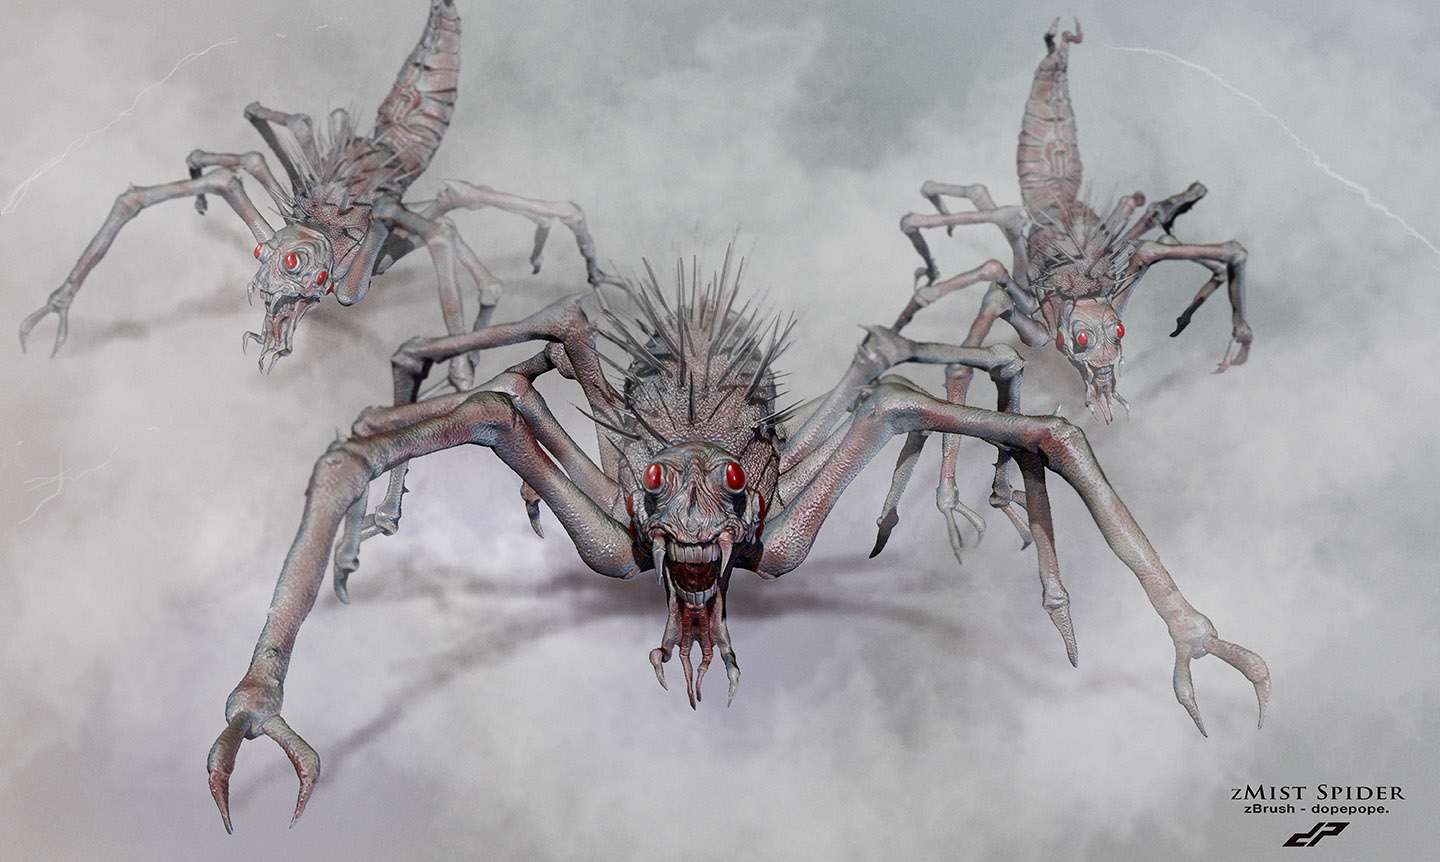 The mist behemoth